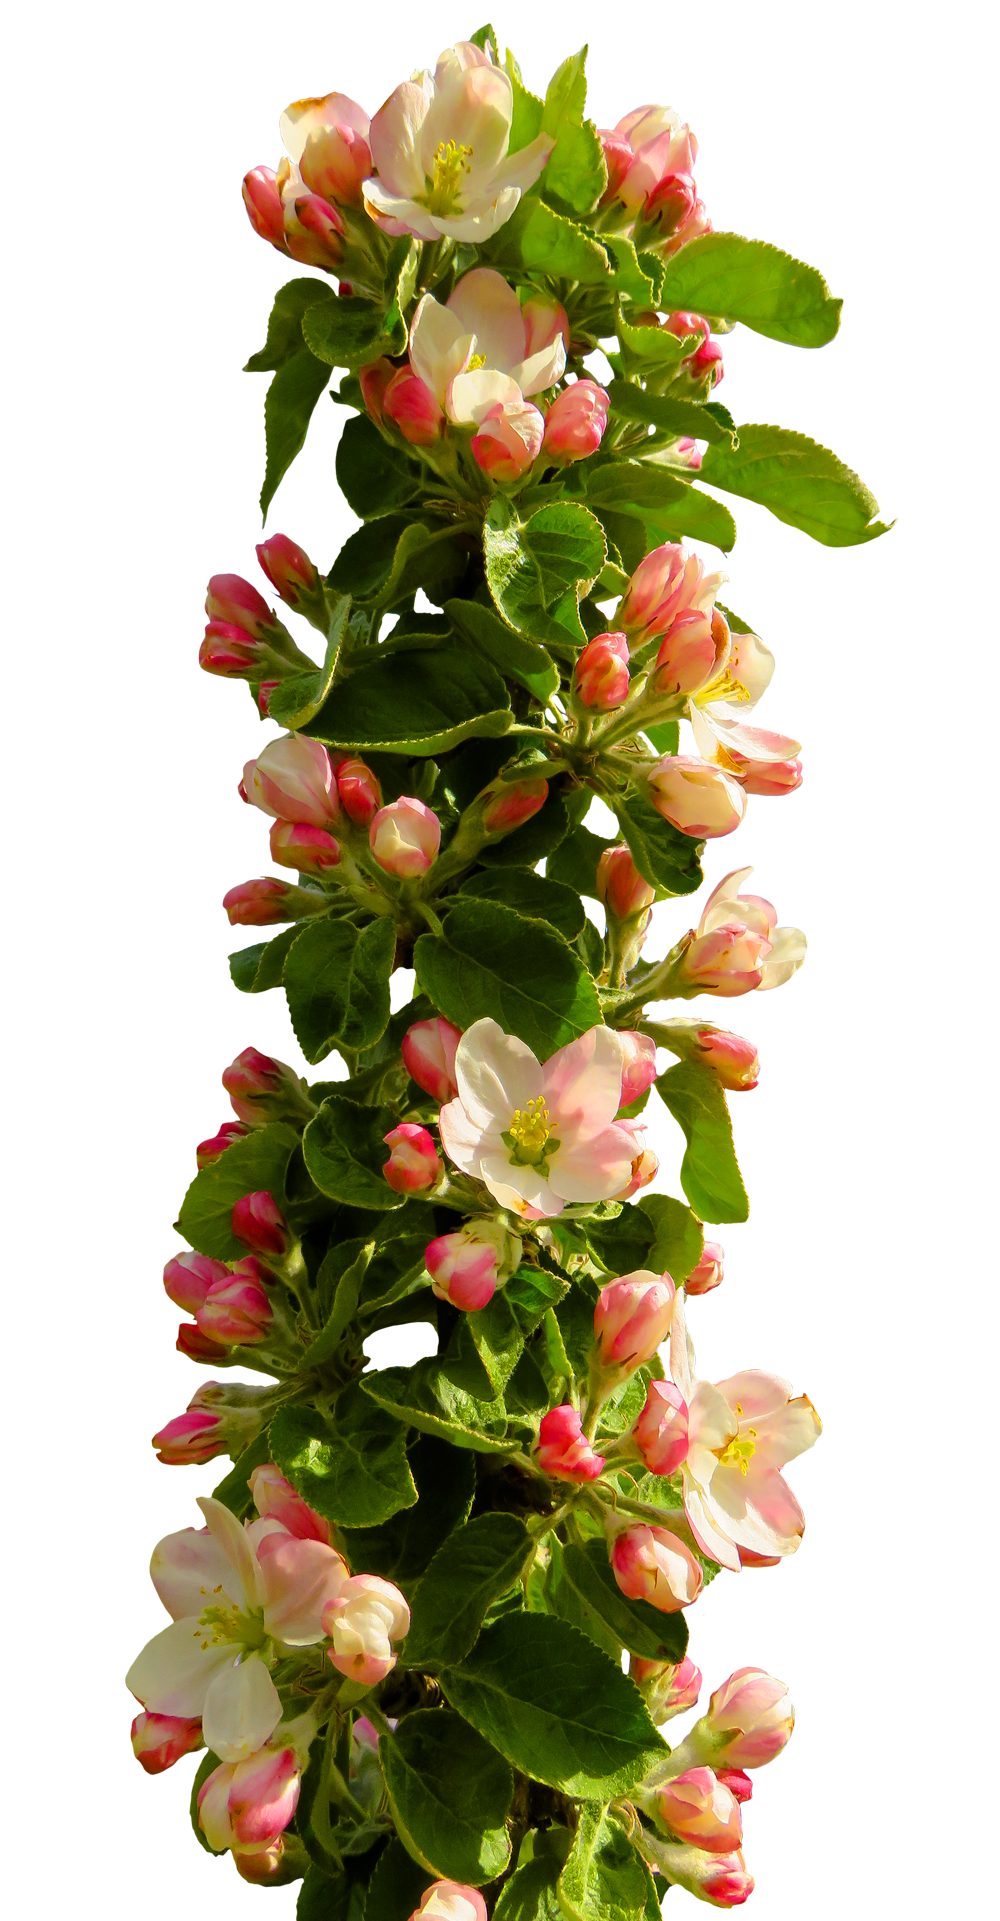 Free pictures of spring flowers image Spring Flower PNG Image - PurePNG | Free transparent CC0 PNG Image ... image